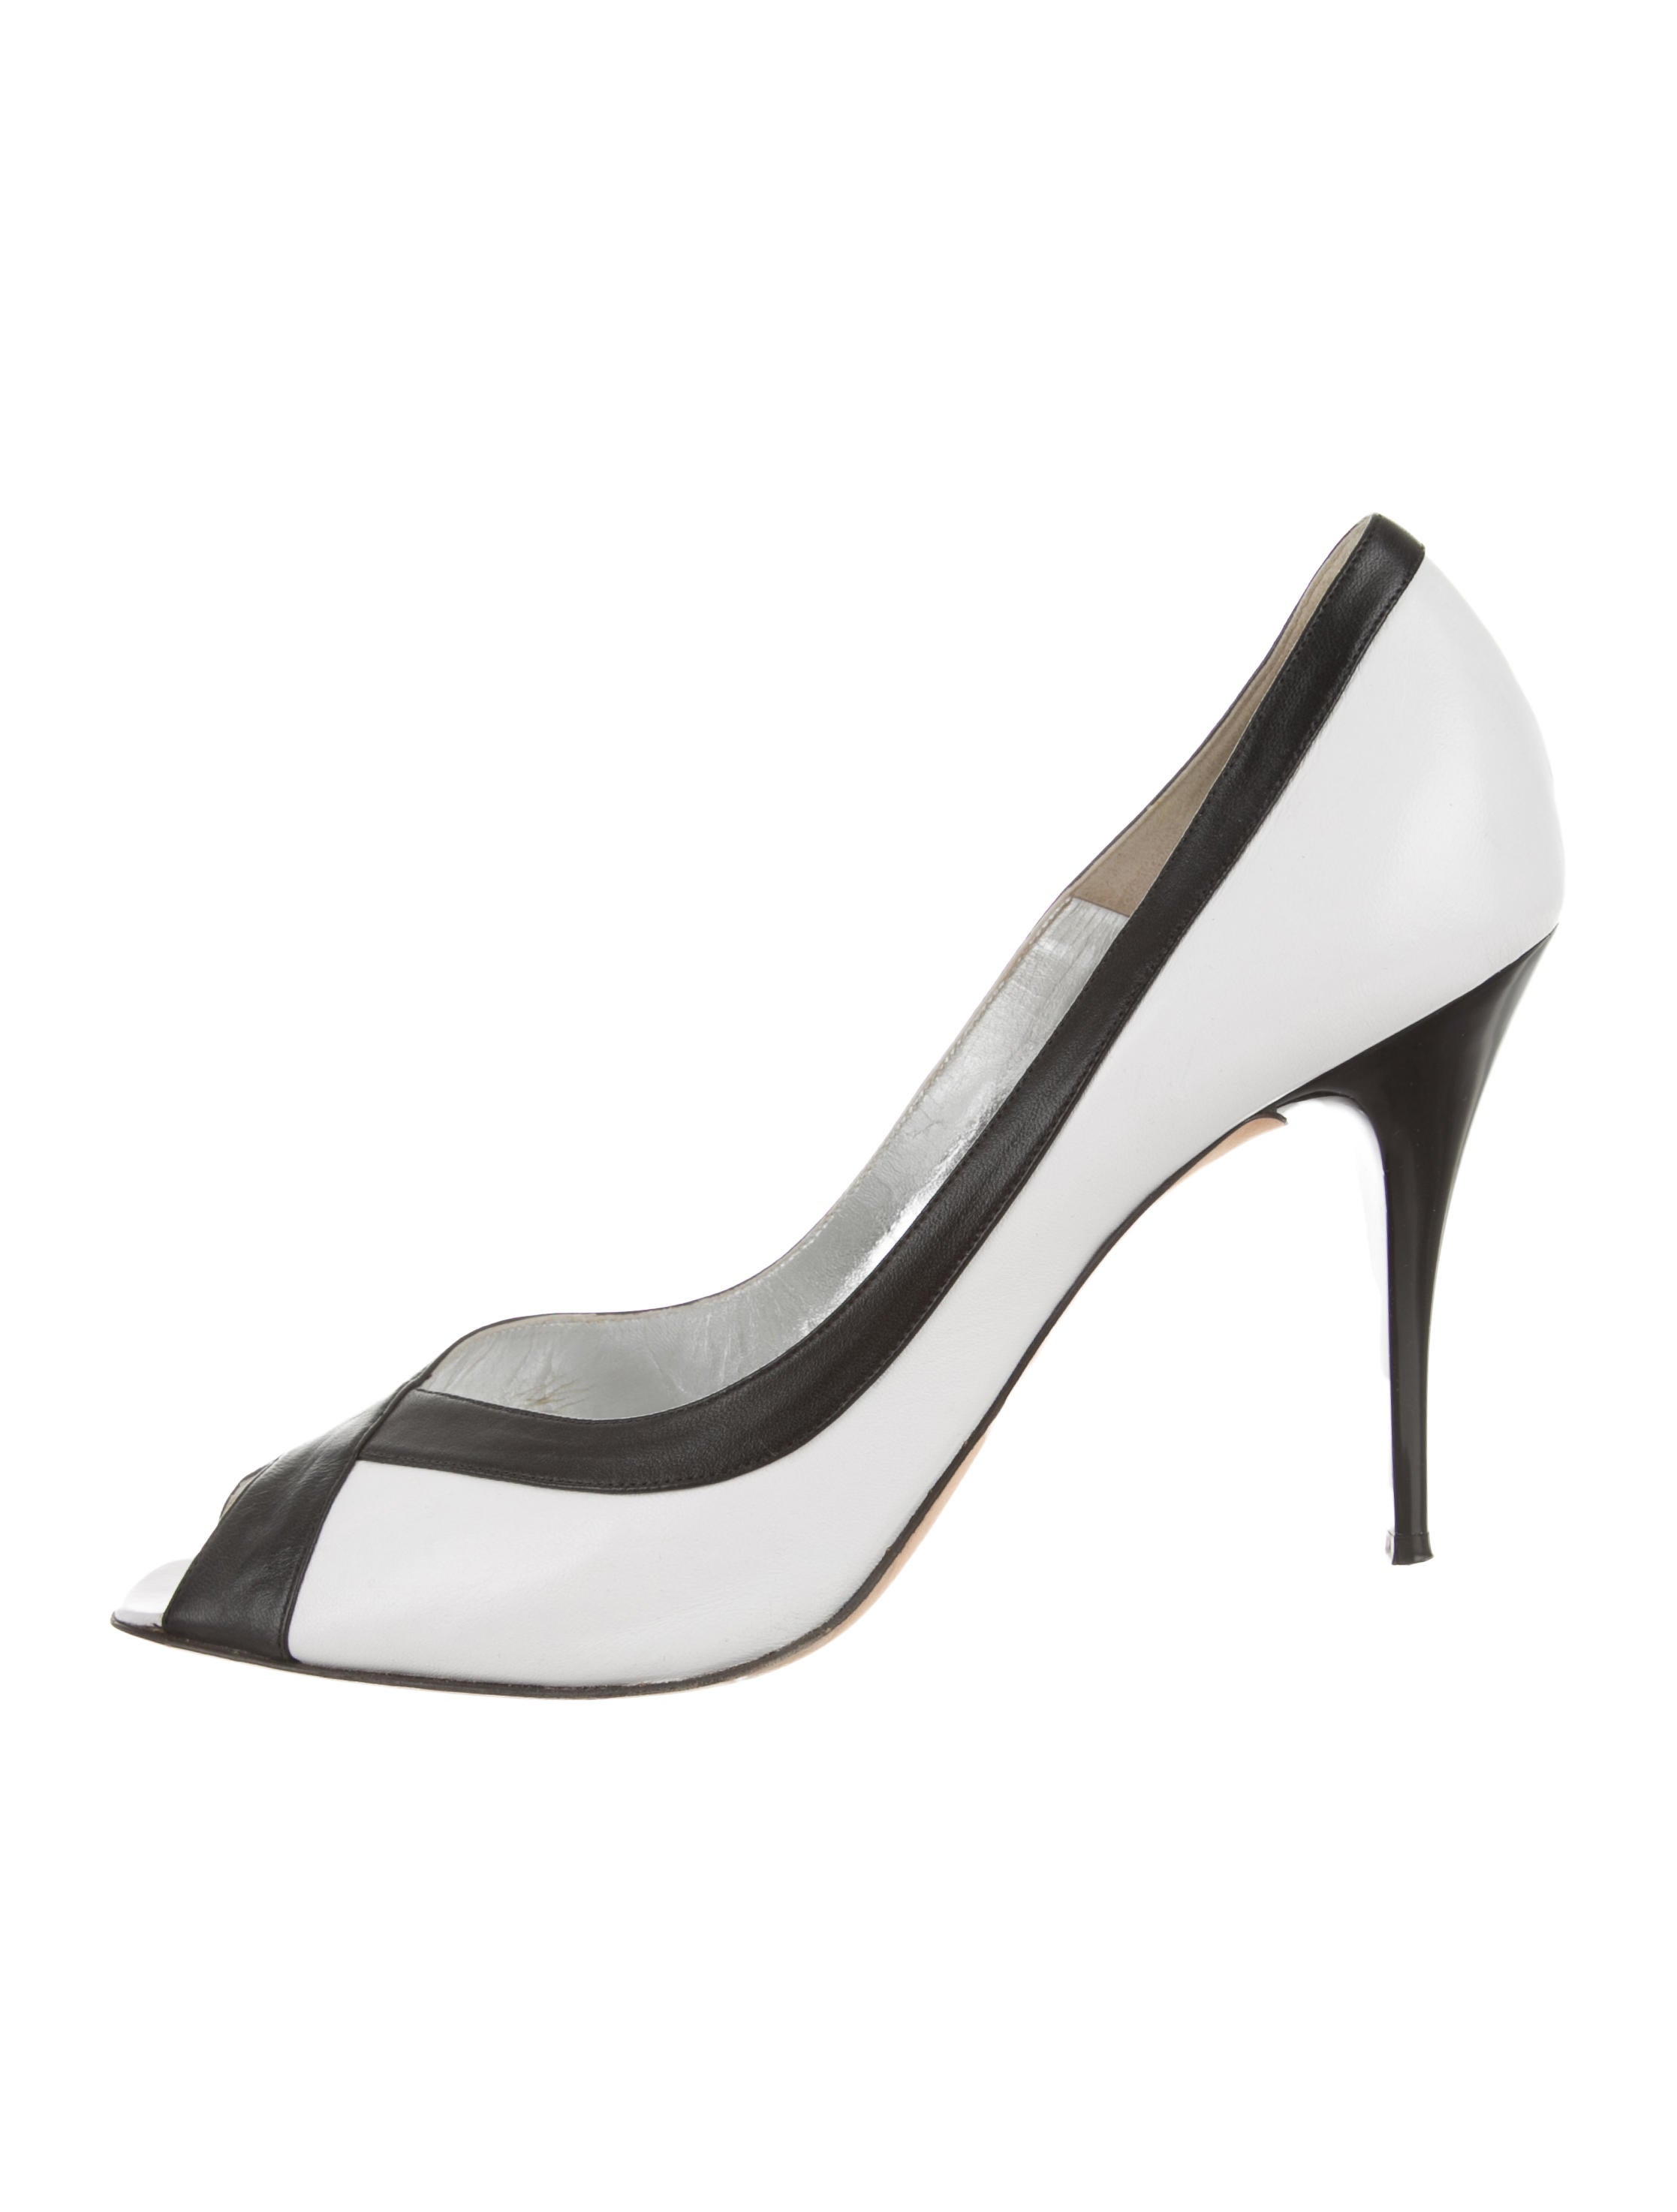 Christian Lacroix Leather Pointed-Toe Pumps cheap sale best seller marketable sale online discount wide range of sale new footaction cheap price 0Ys0uG6H